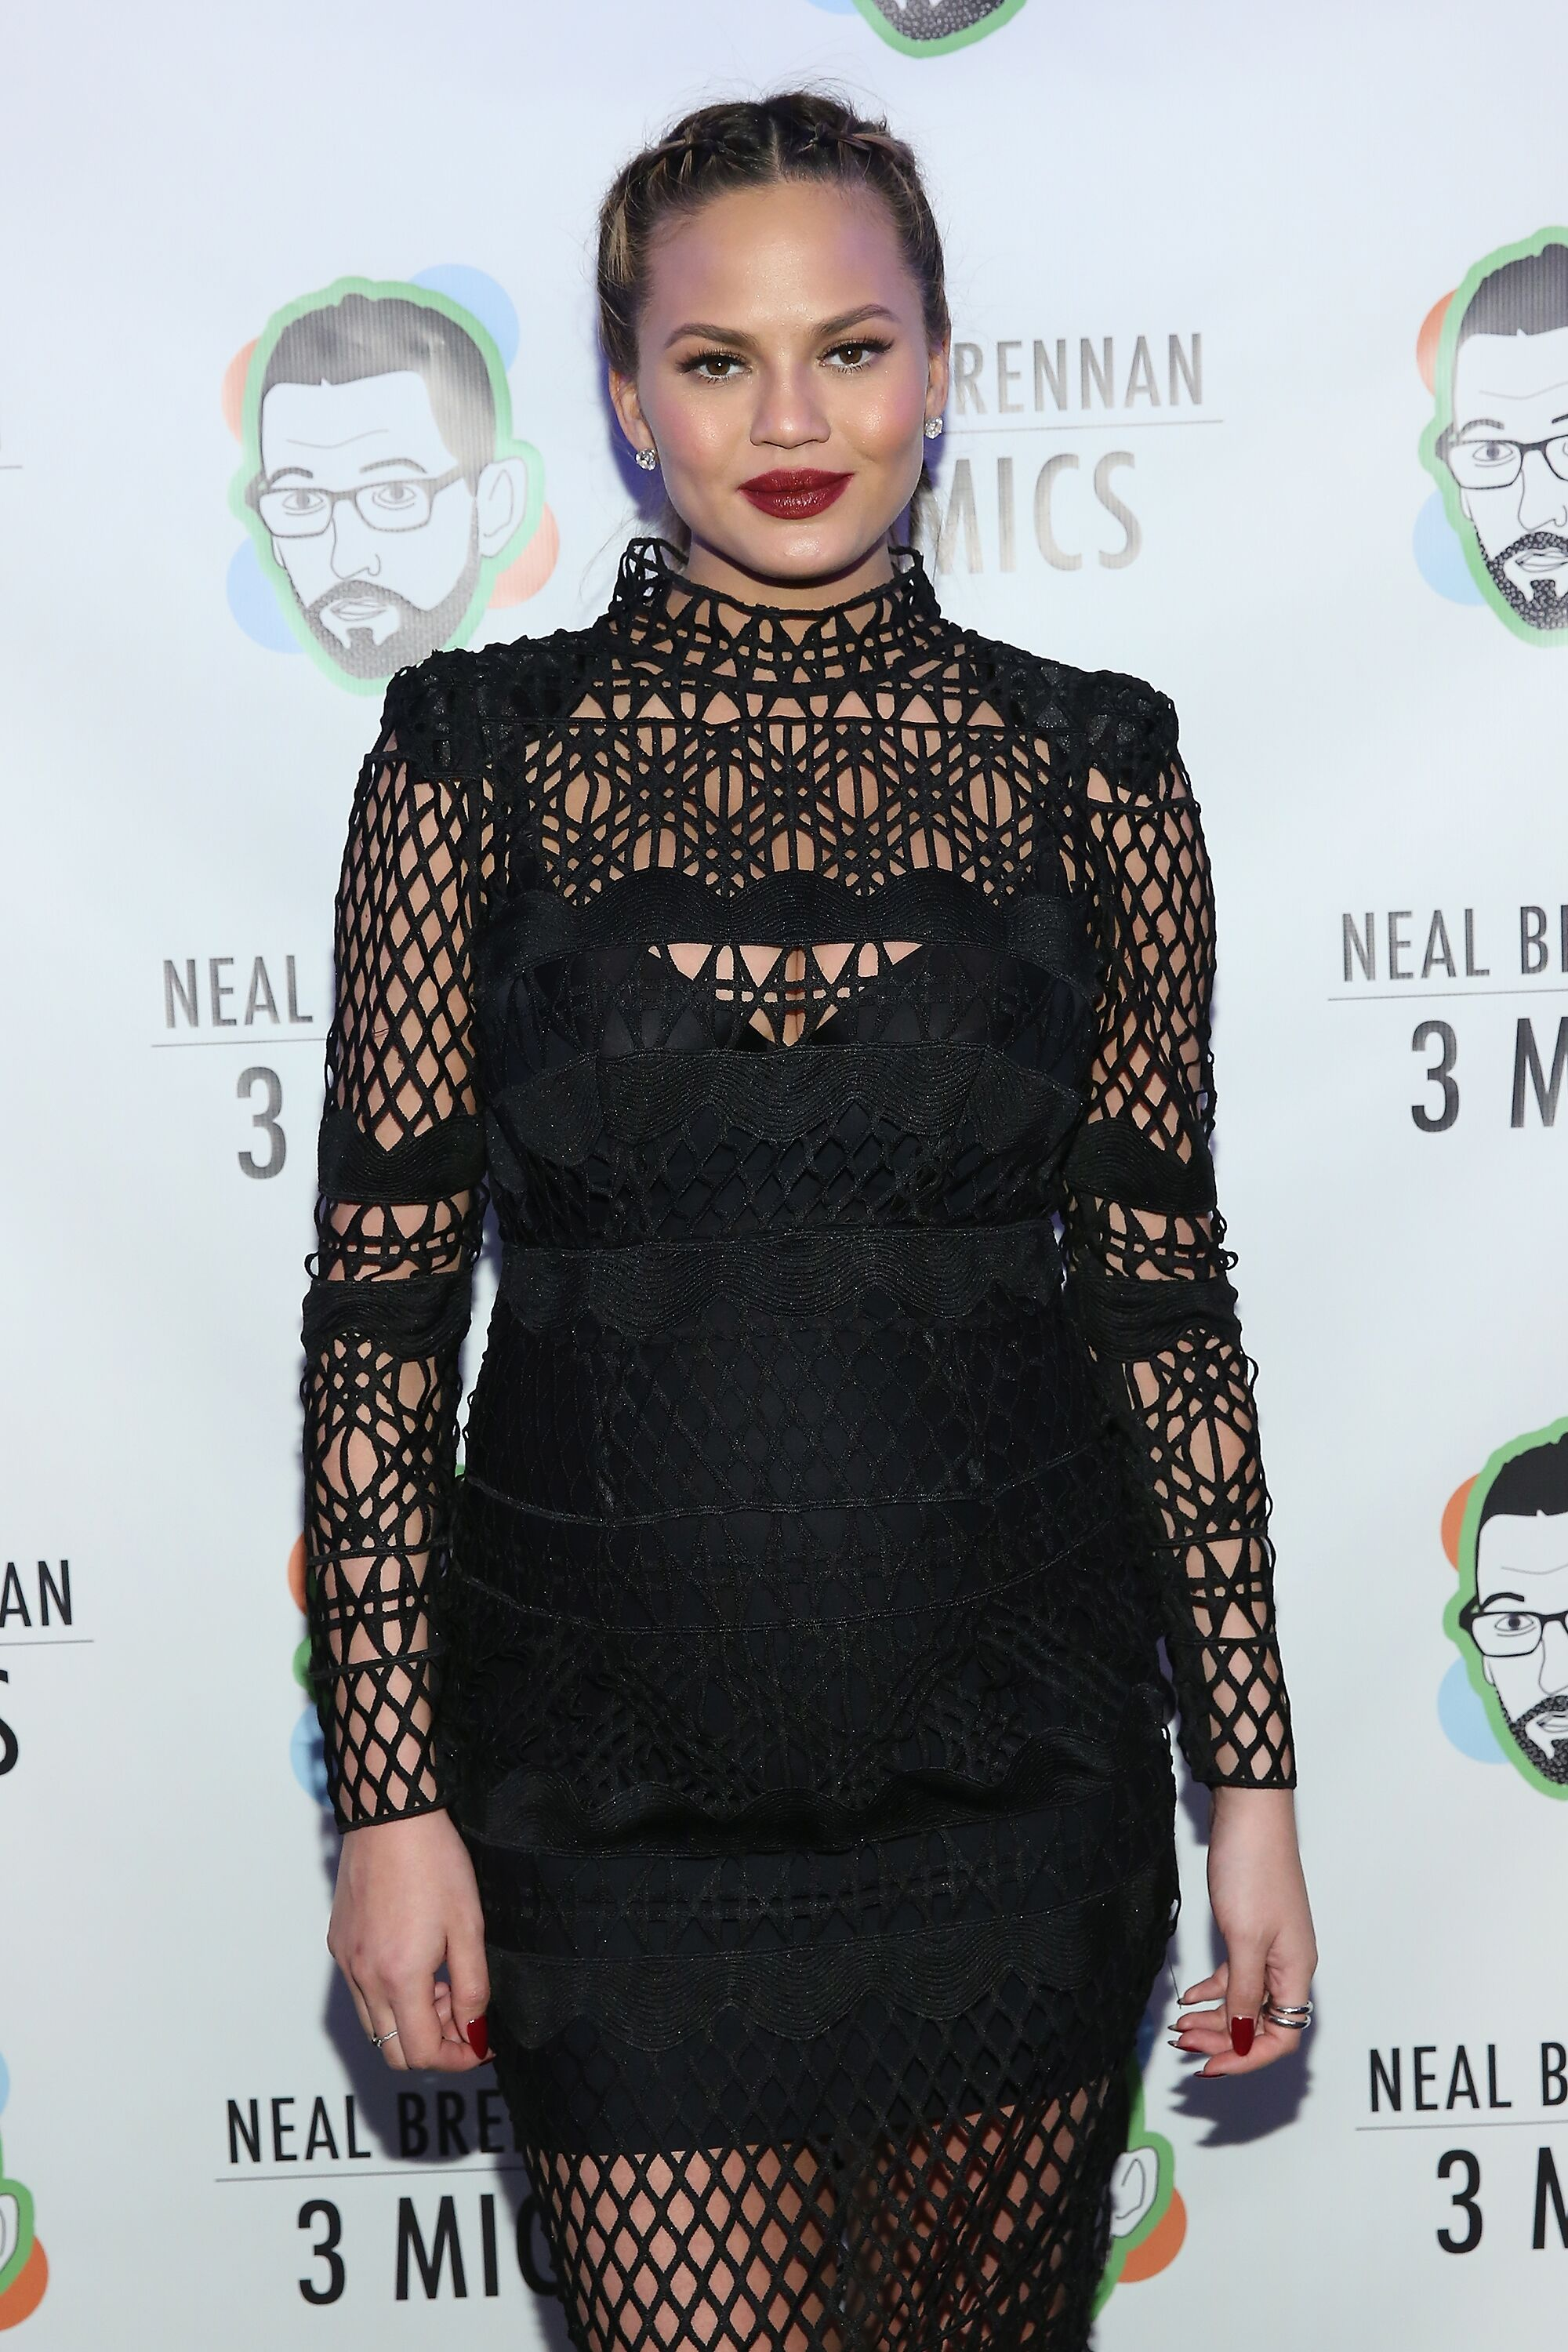 """Chrissy Teigen attends """"Neal Brennan 3 Mics"""" Opening Night at the Lynn Redgrave Theatre on March 3, 2016 